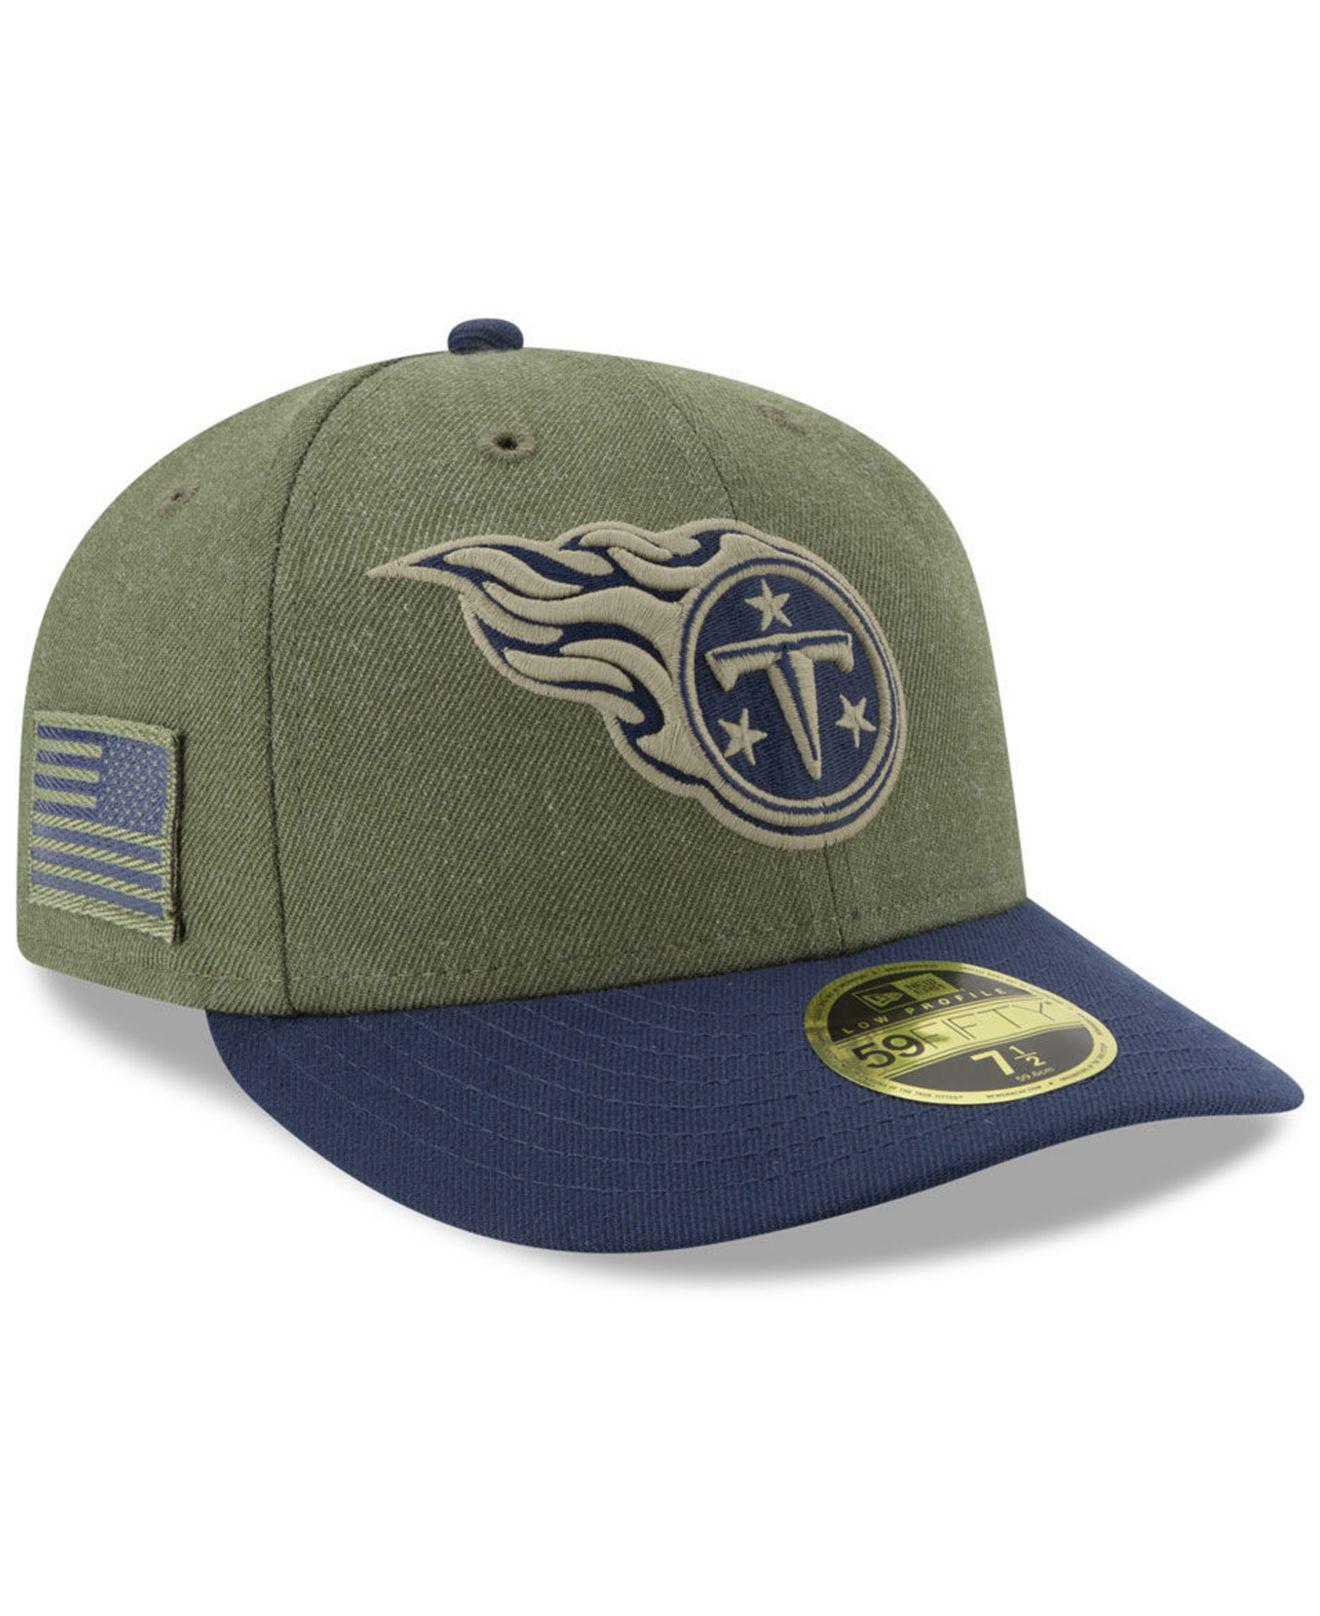 4d8b2ae27 KTZ. Men s Green Tennessee Titans Salute To Service Low Profile 59fifty  Fitted Cap 2018